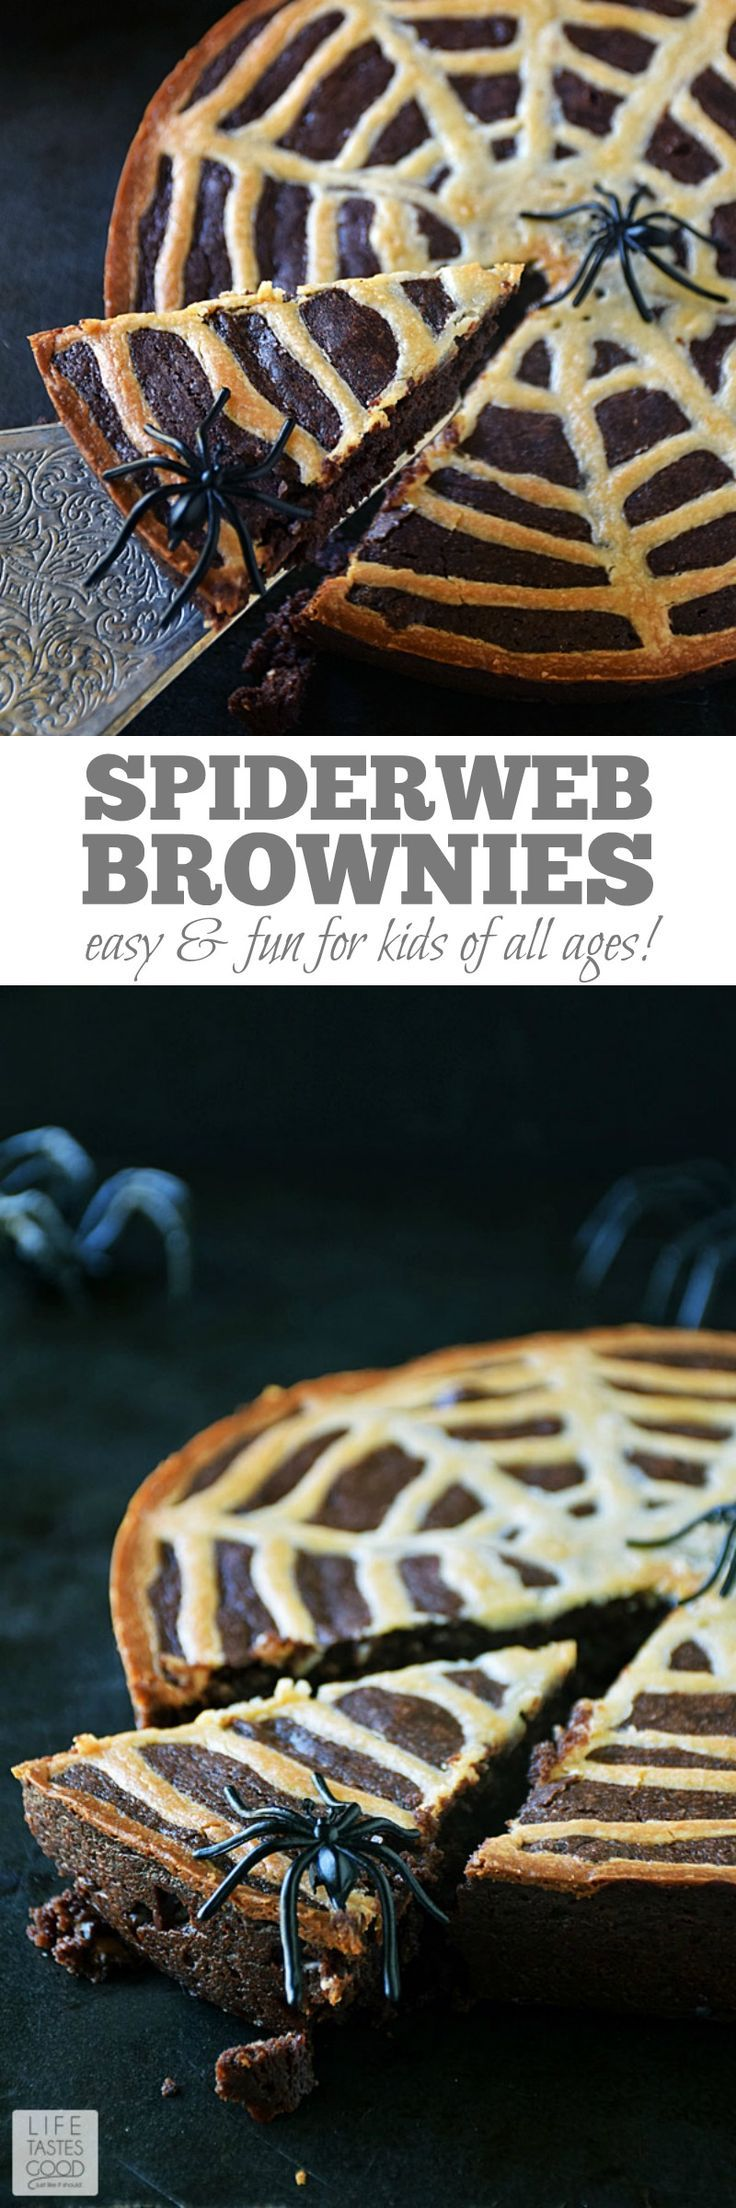 Spiderweb Brownies | by Life Tastes Good are a fun treat to celebrate Halloween. They are rich and chocolaty with a hint of tang from the cream cheese spiderweb on top, and these brownies are just the right amount of spooky to bring out the smiles. #LTGrecipes #HalloweenRecipes #DessertRecipes #ChocolateRecipes